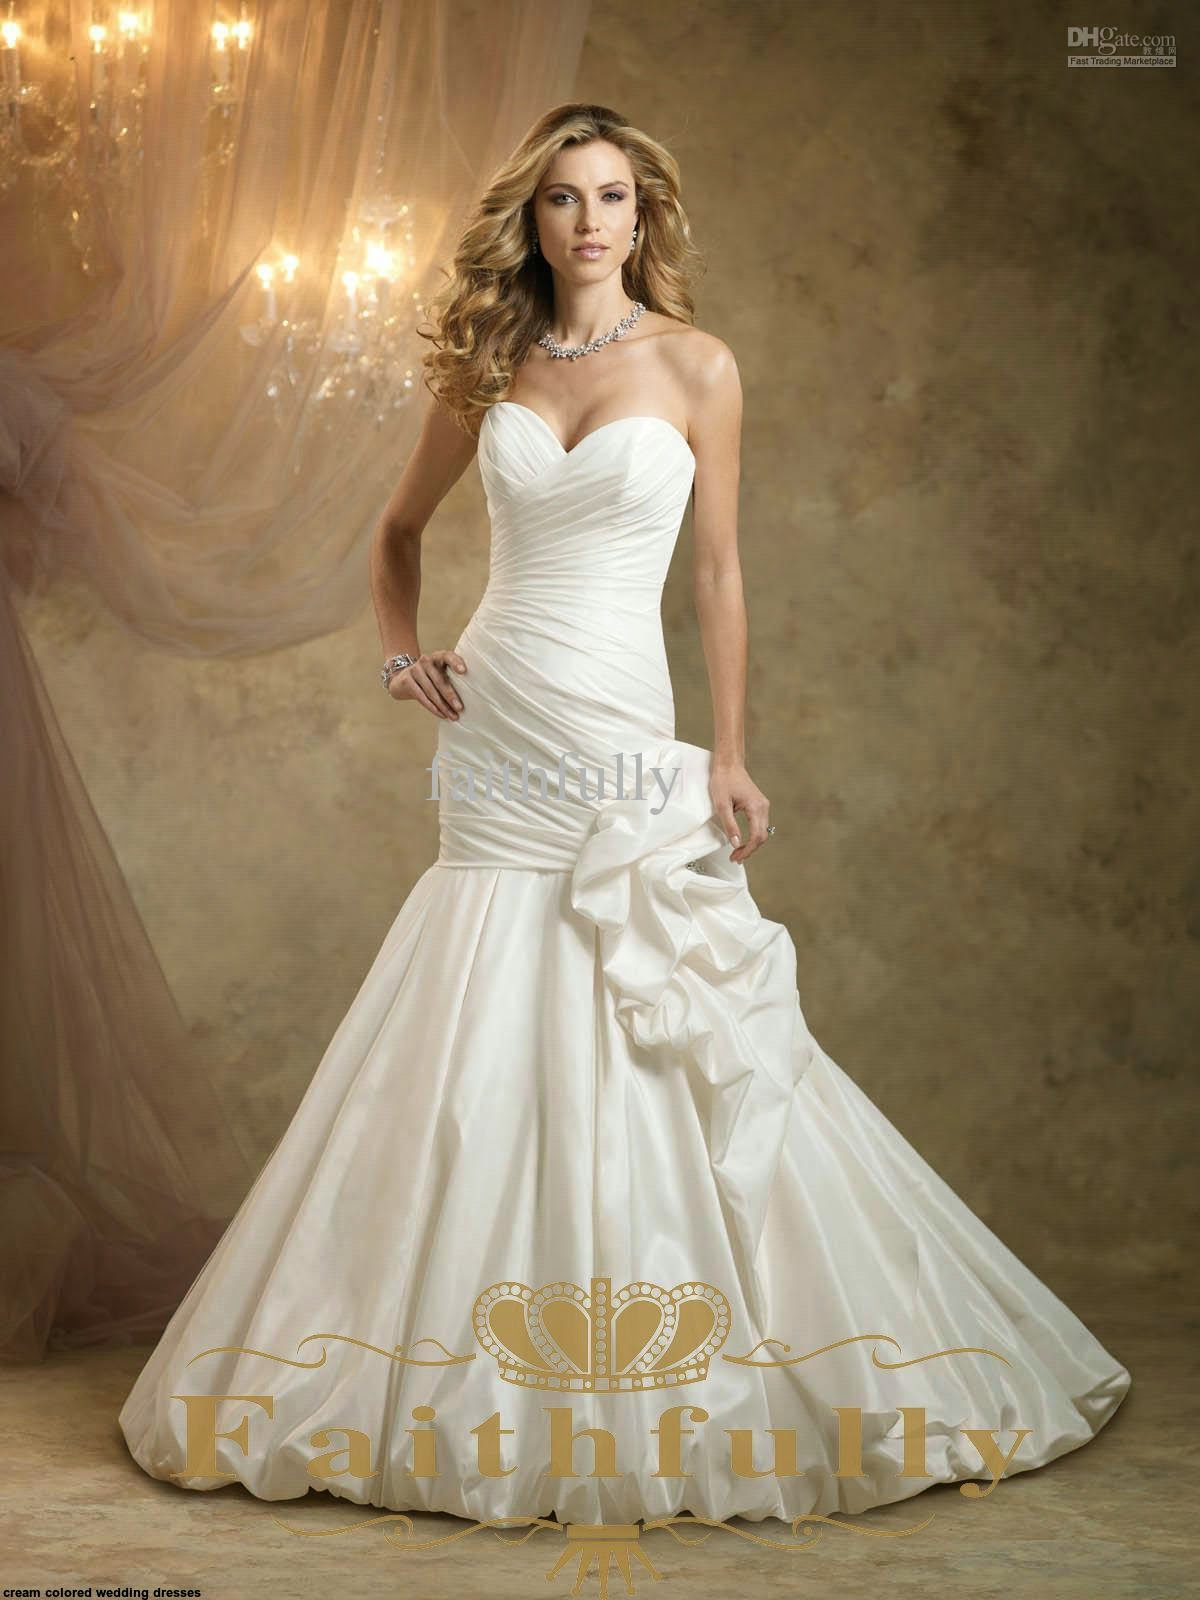 Tips for cream colored wedding dresses wedding dresses for Cream colored lace wedding dresses